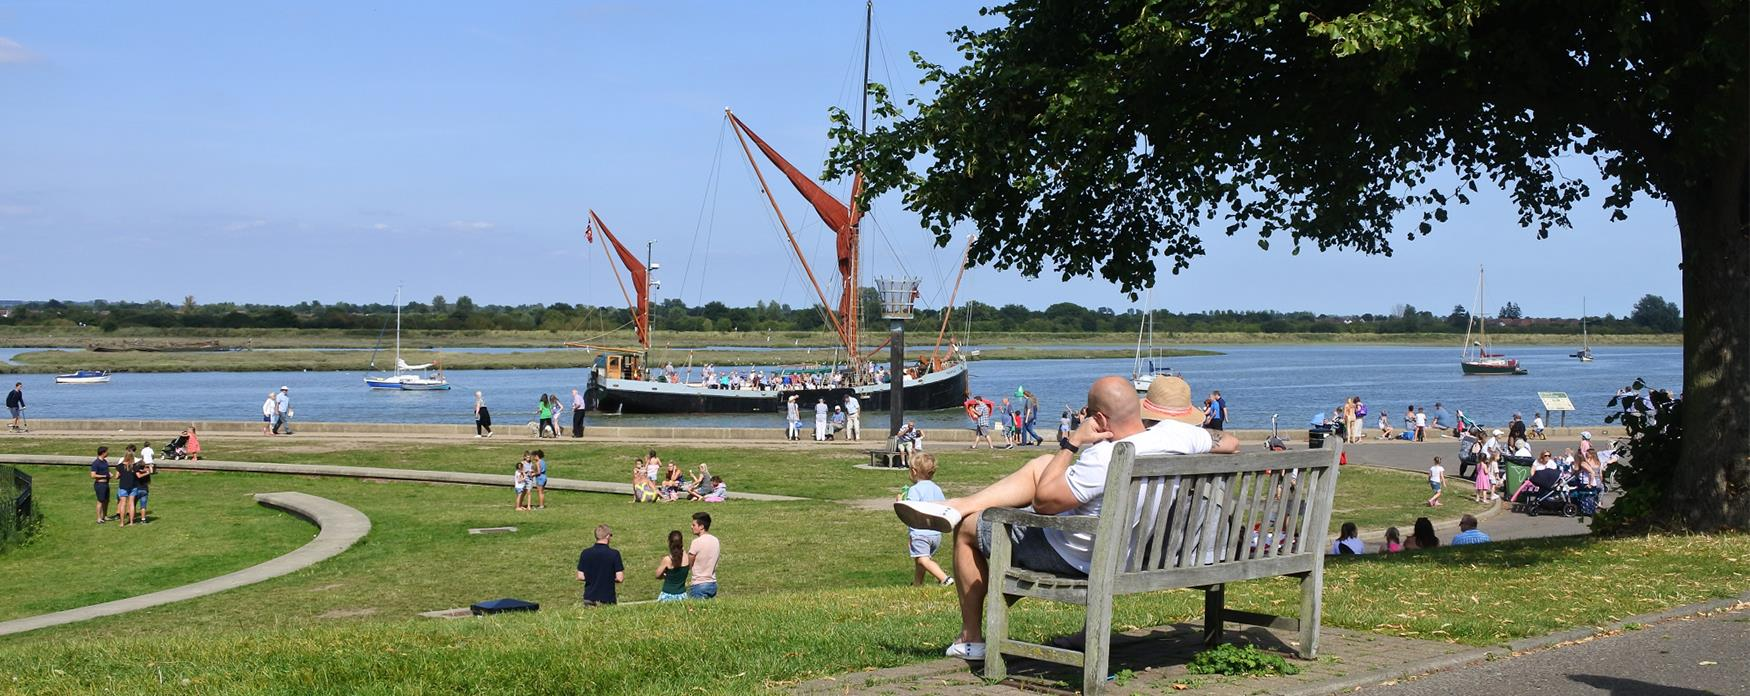 People sitting in the park, with the river Blackwater in the background